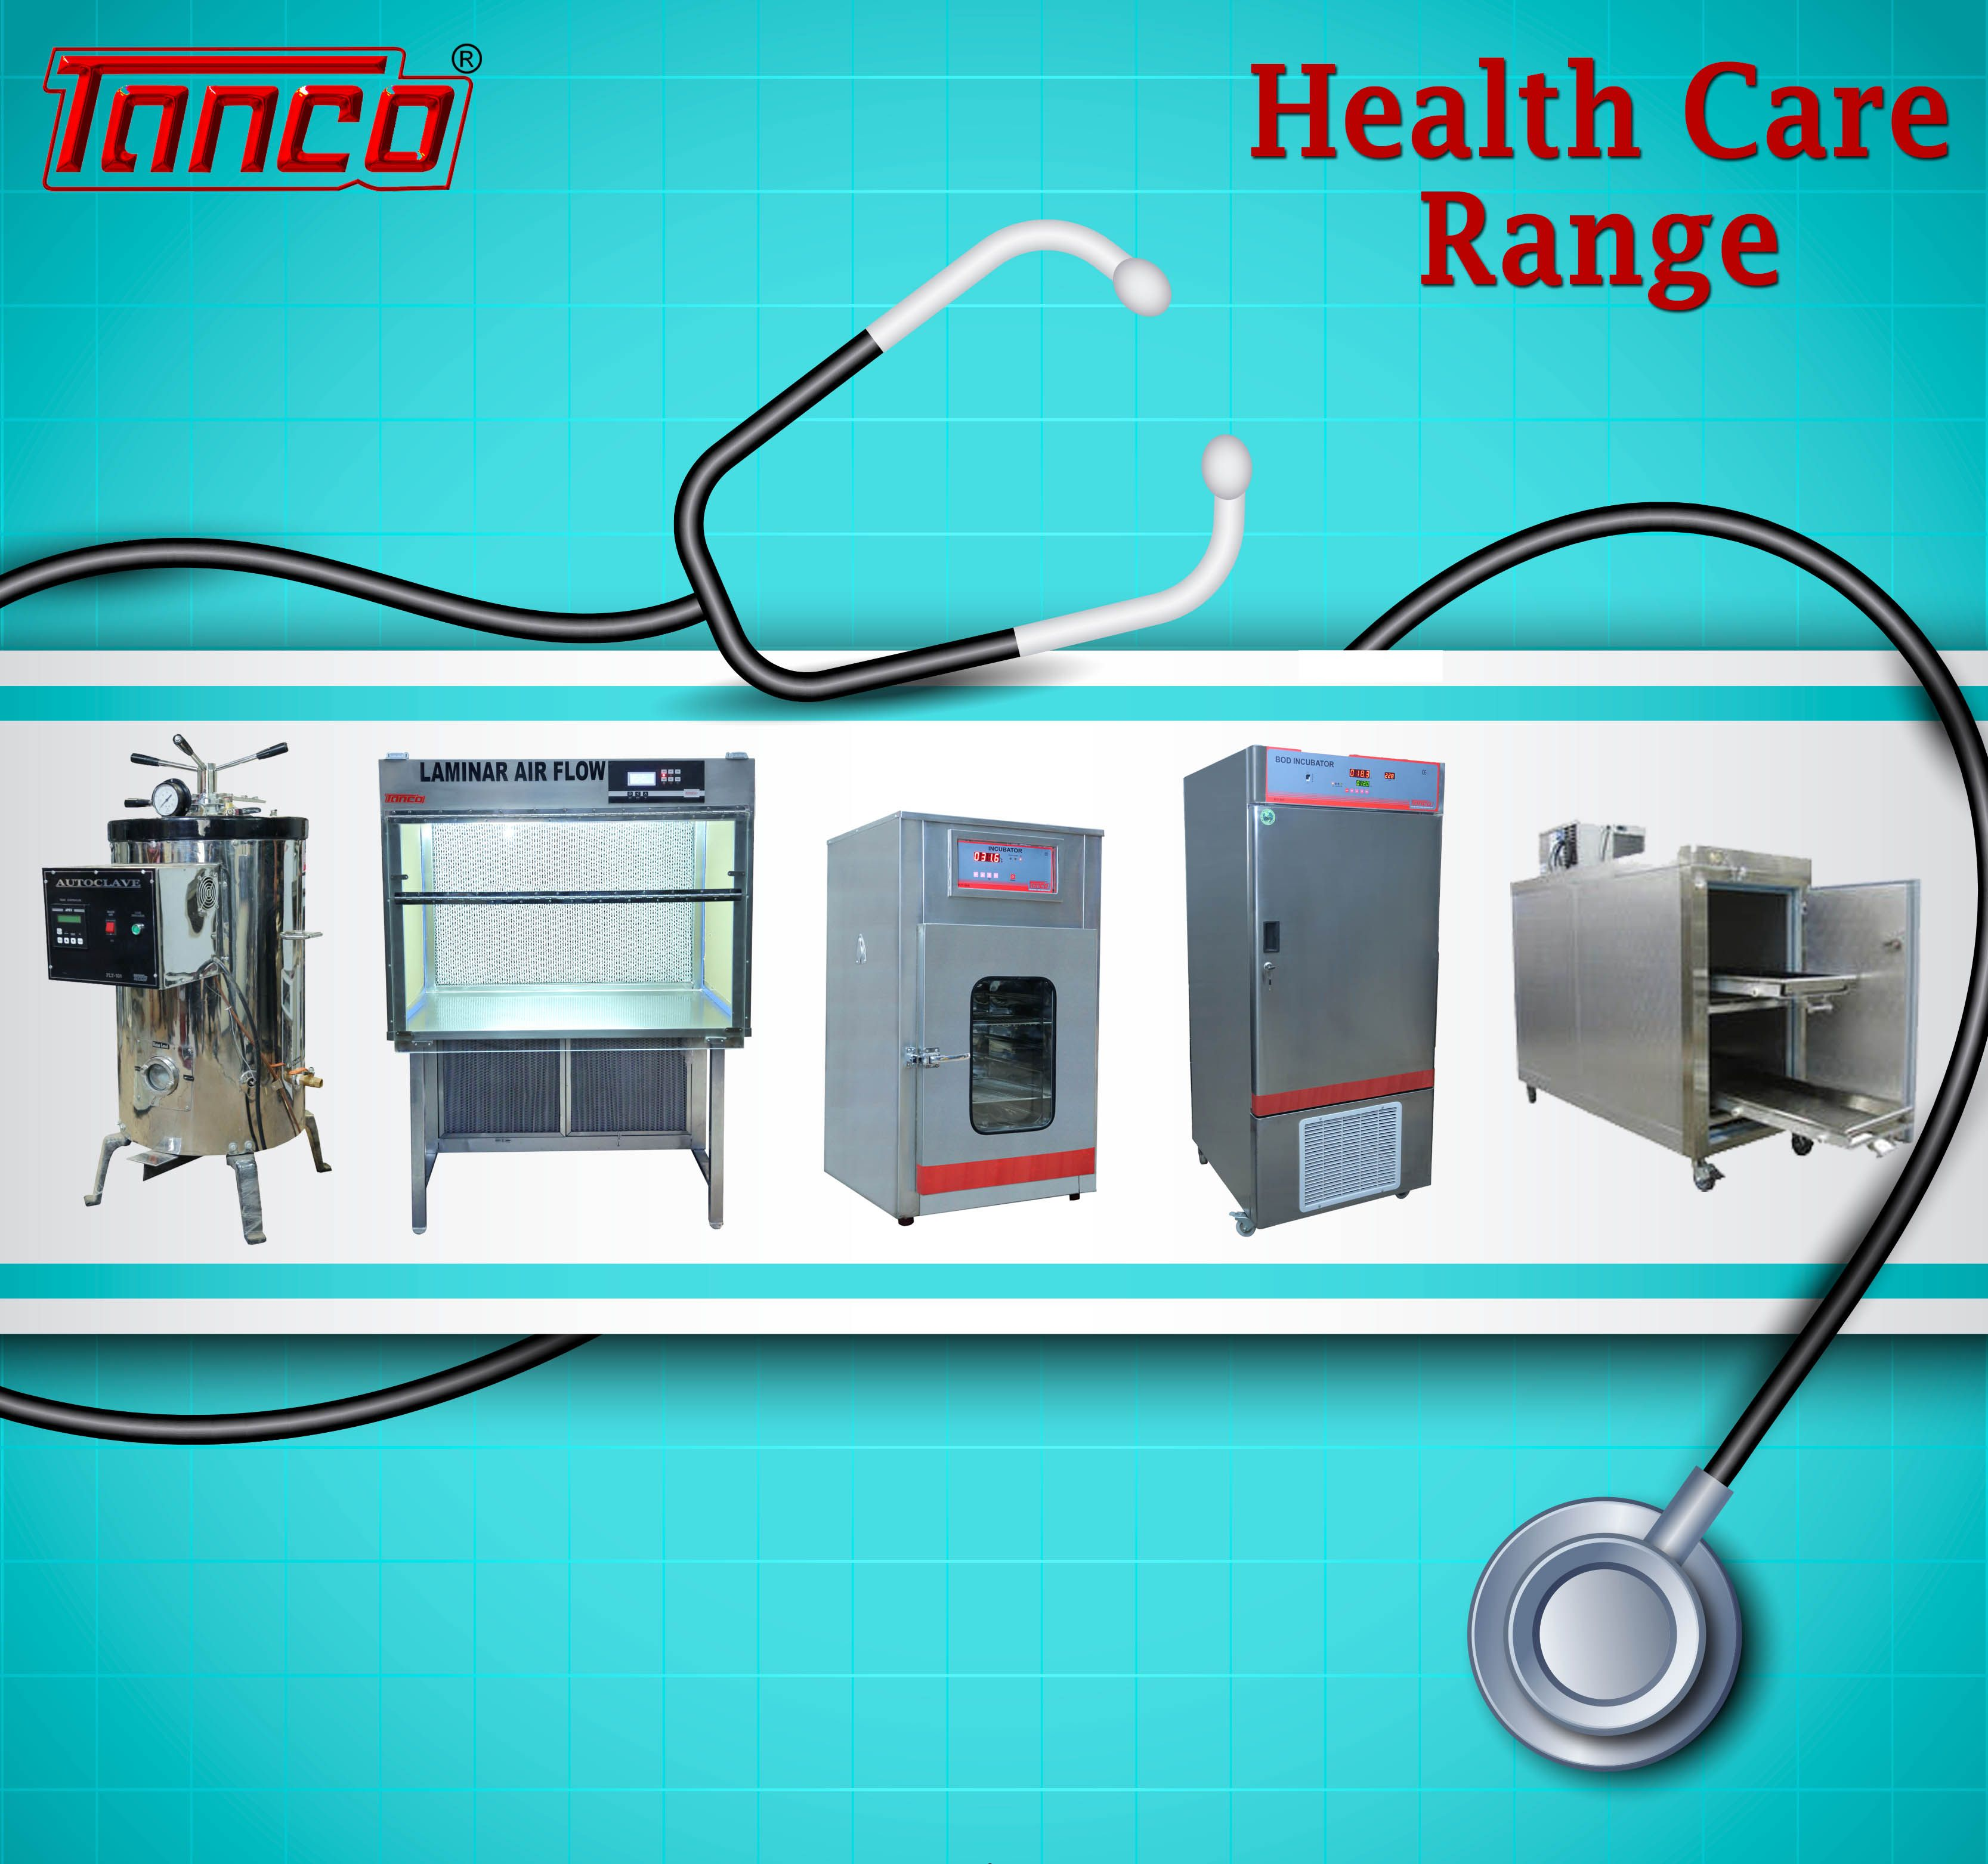 Tanco Lab Products Manufactures All Kinds Of Equipment That Are Suitable For Use In Medicals Hospitals And Other Healt Healthcare Industry Medical Health Care